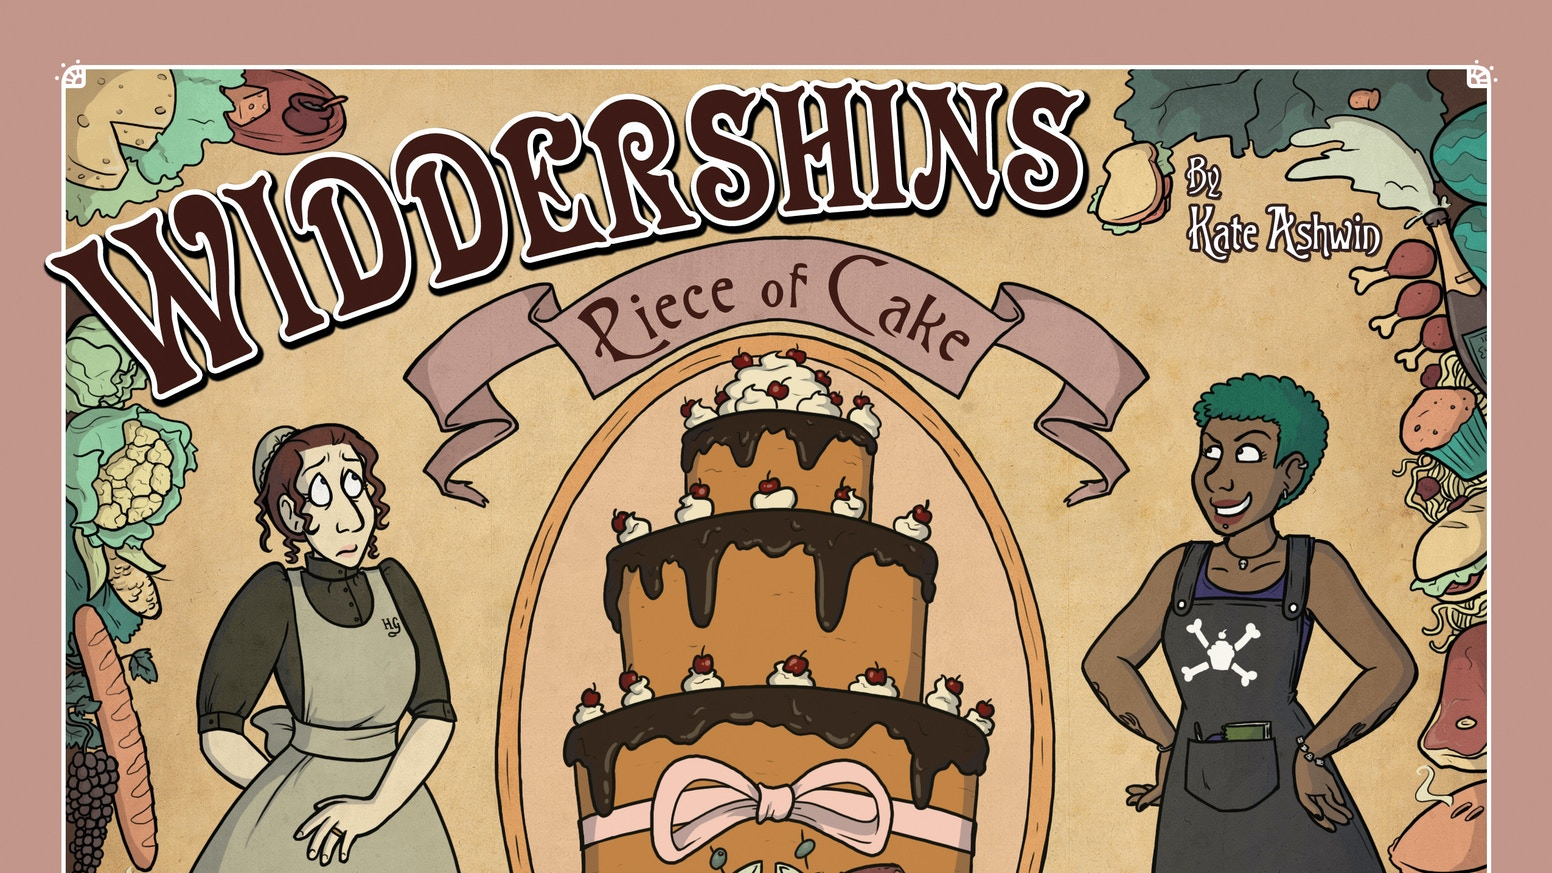 A comic featuring adventure, magic, time travel, and an excessive amount of baked goods.